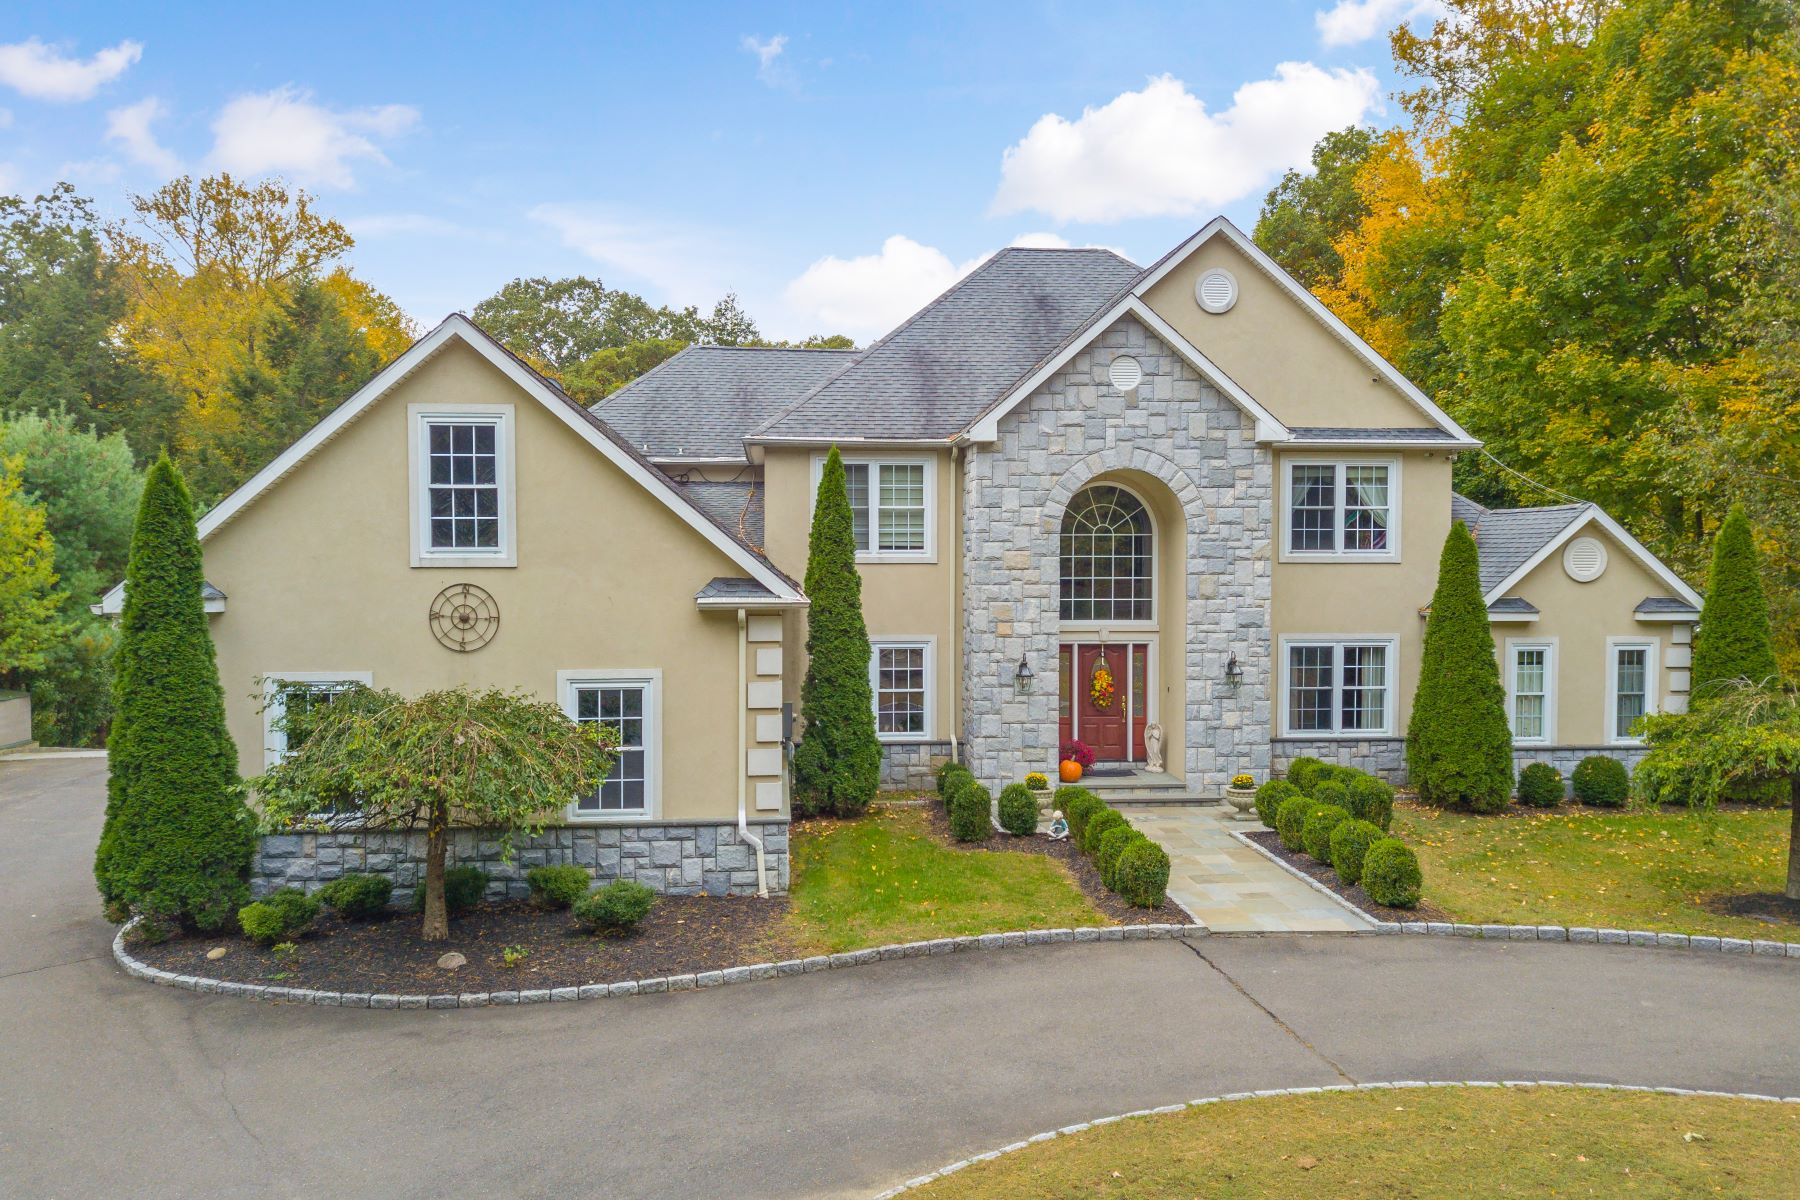 Single Family Homes for Sale at Custom Built European Colonial 37 Turkey Plain Road Bethel, Connecticut 06801 United States